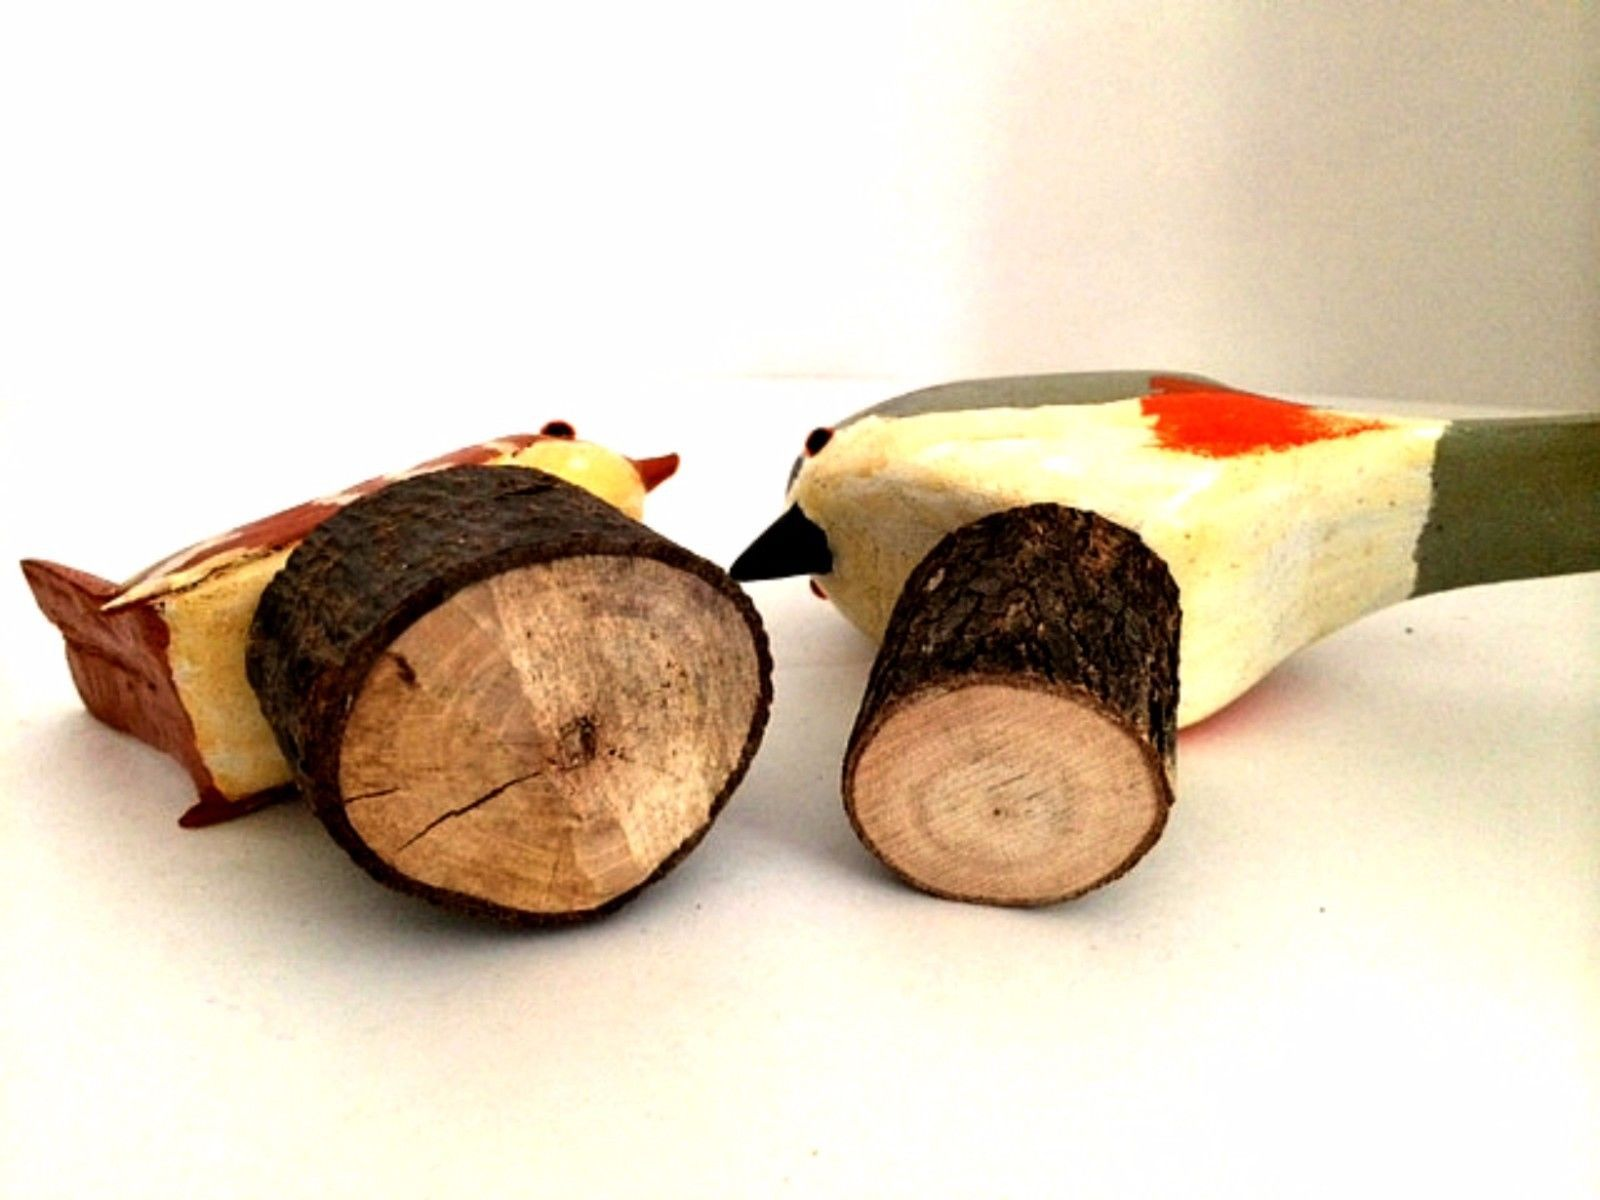 Two Hand Carved Wooden Birds on Tiny Logs Folk Art Crafts 4 inches Tall